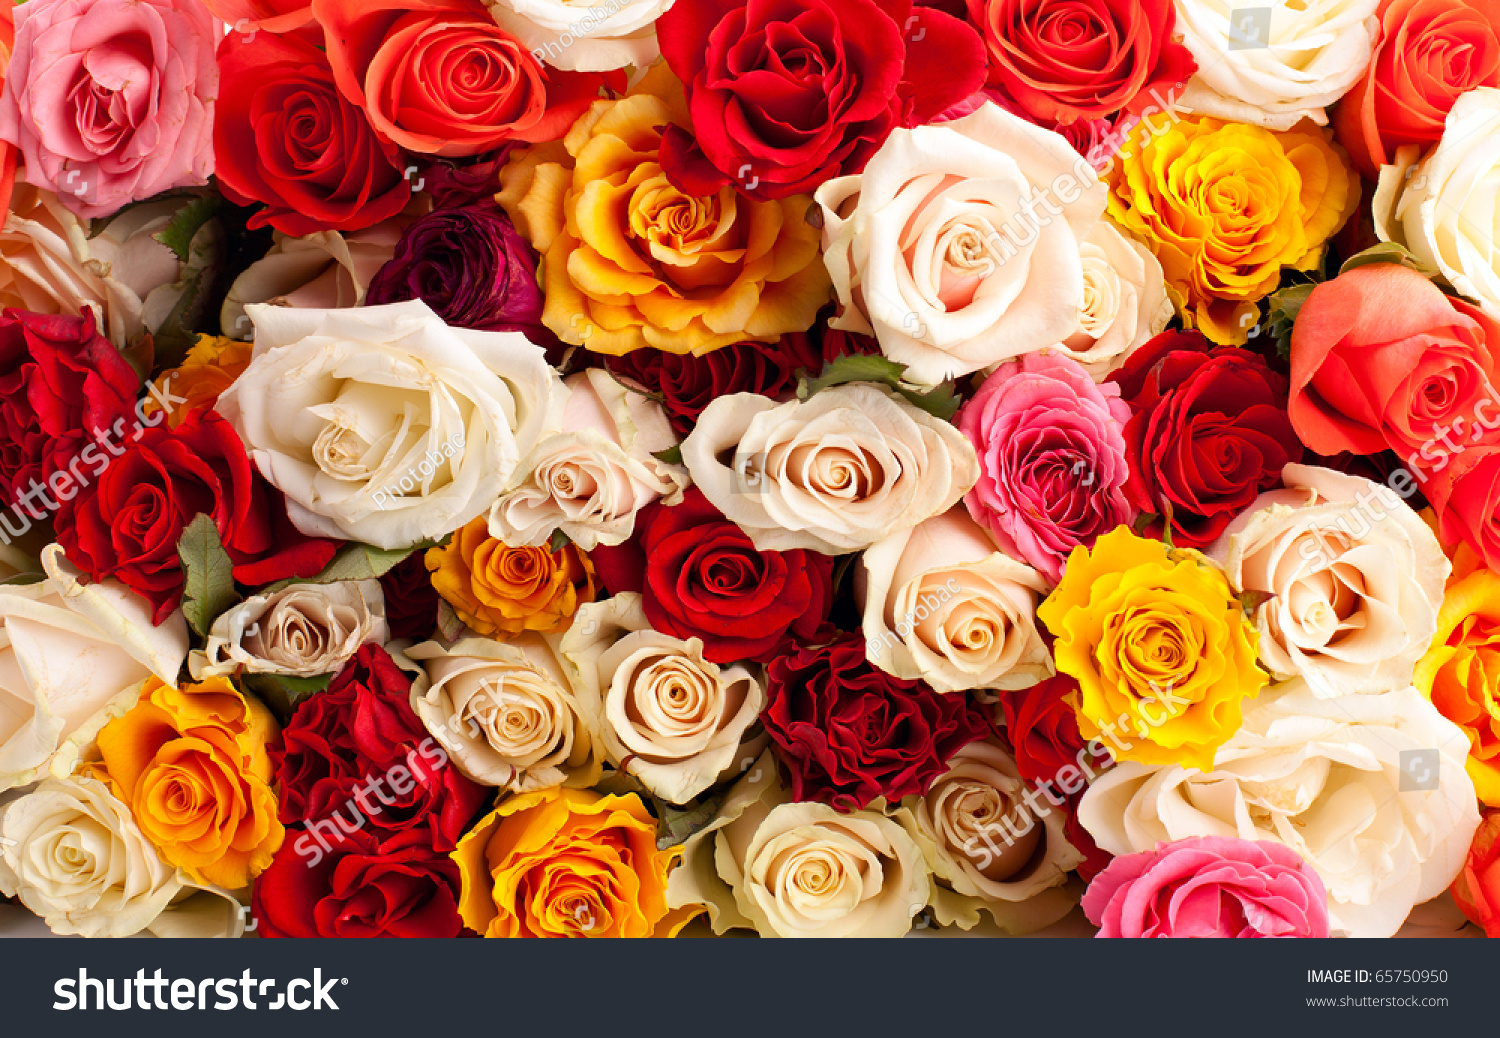 background colorful roses stock photo 65750950 shutterstock